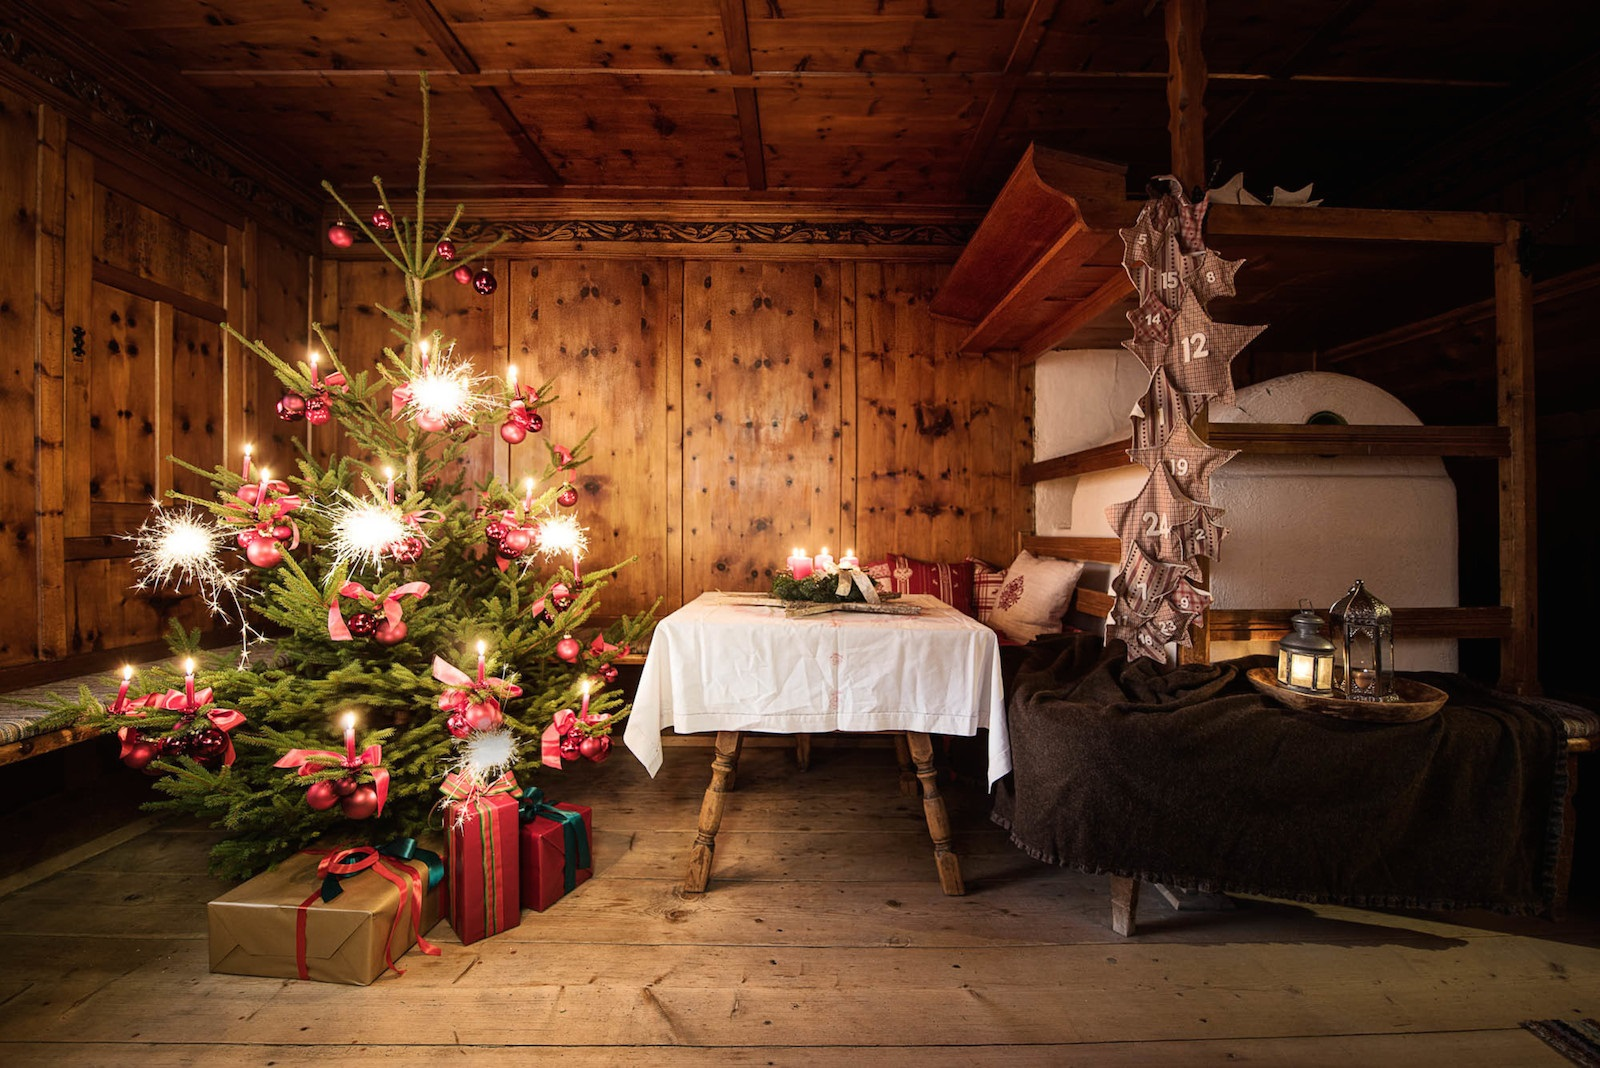 All the good from Austria (to be discovered at Christmas)